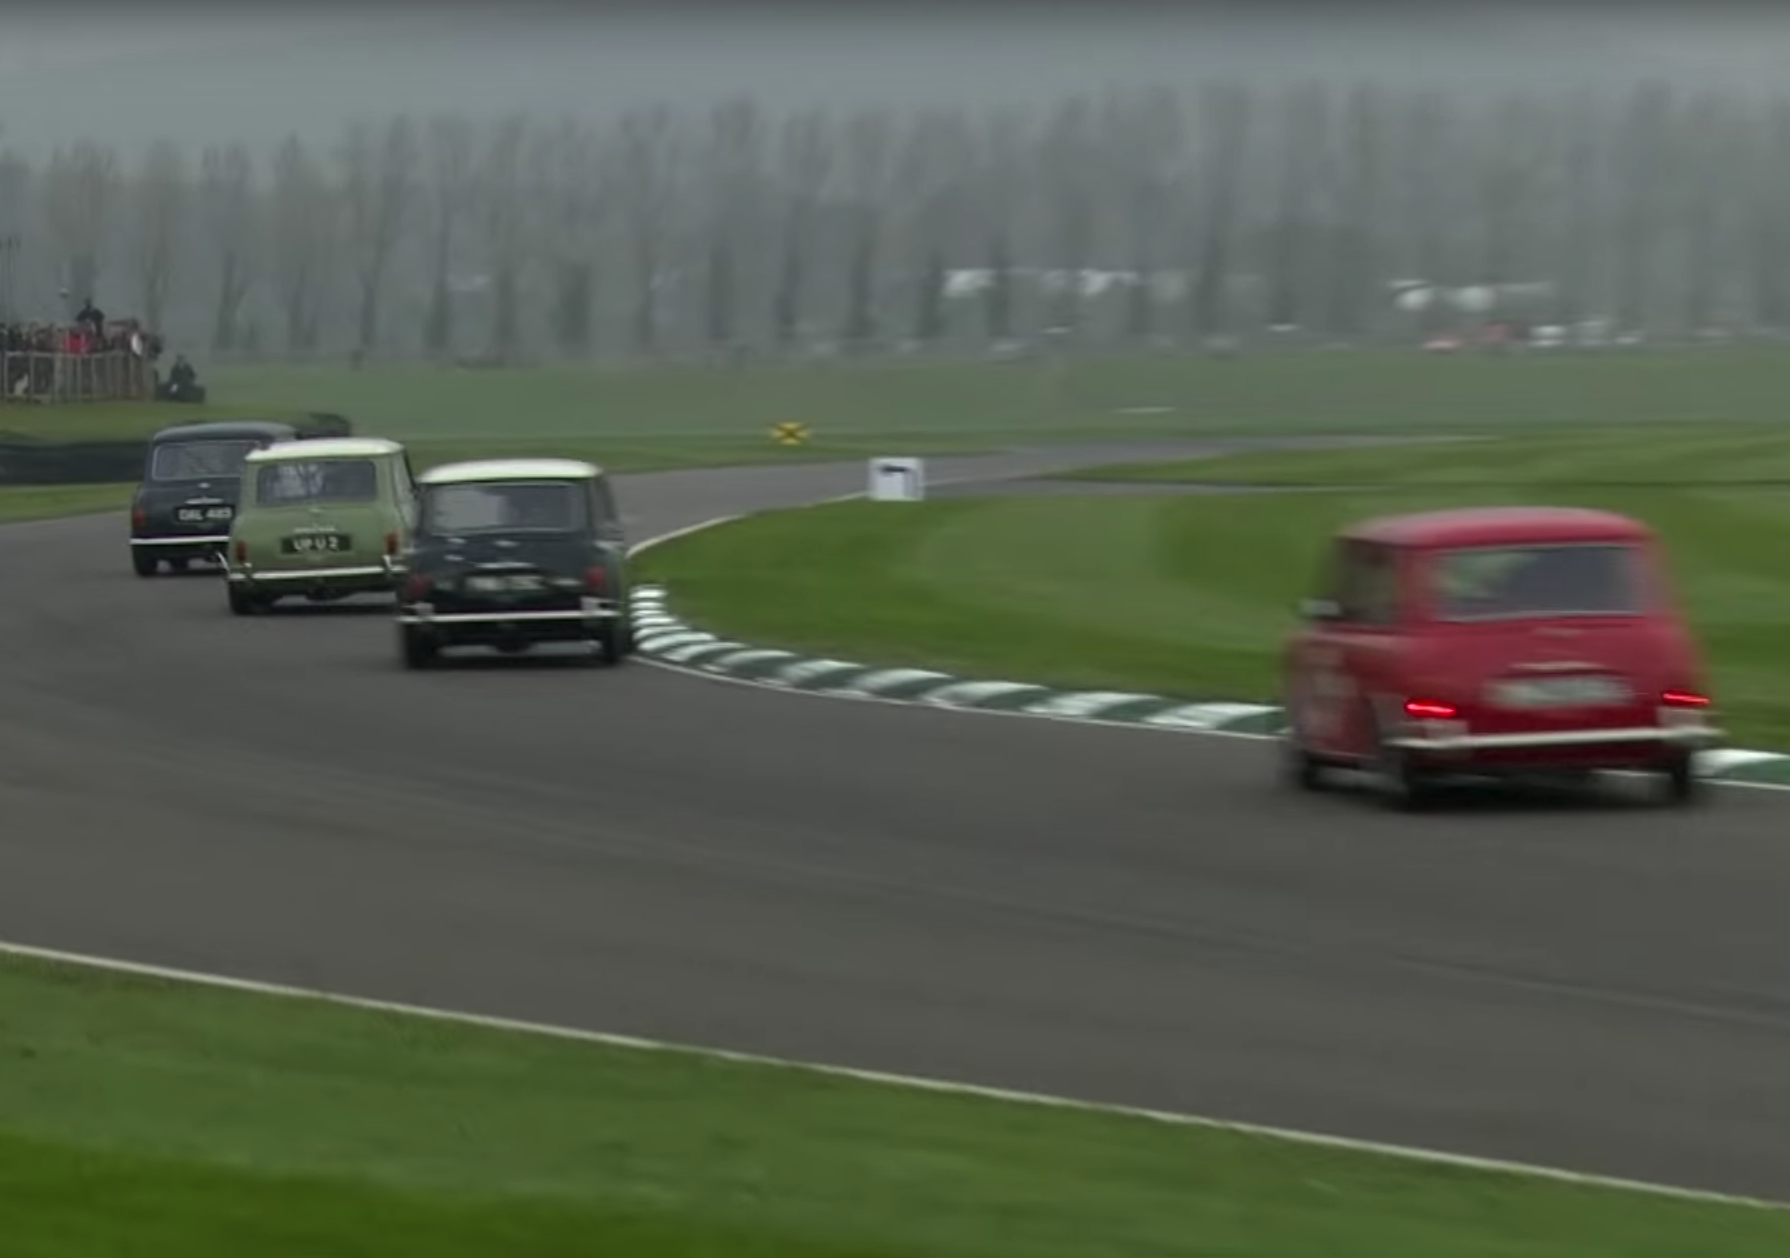 classic mini race at goodwood member's meeting